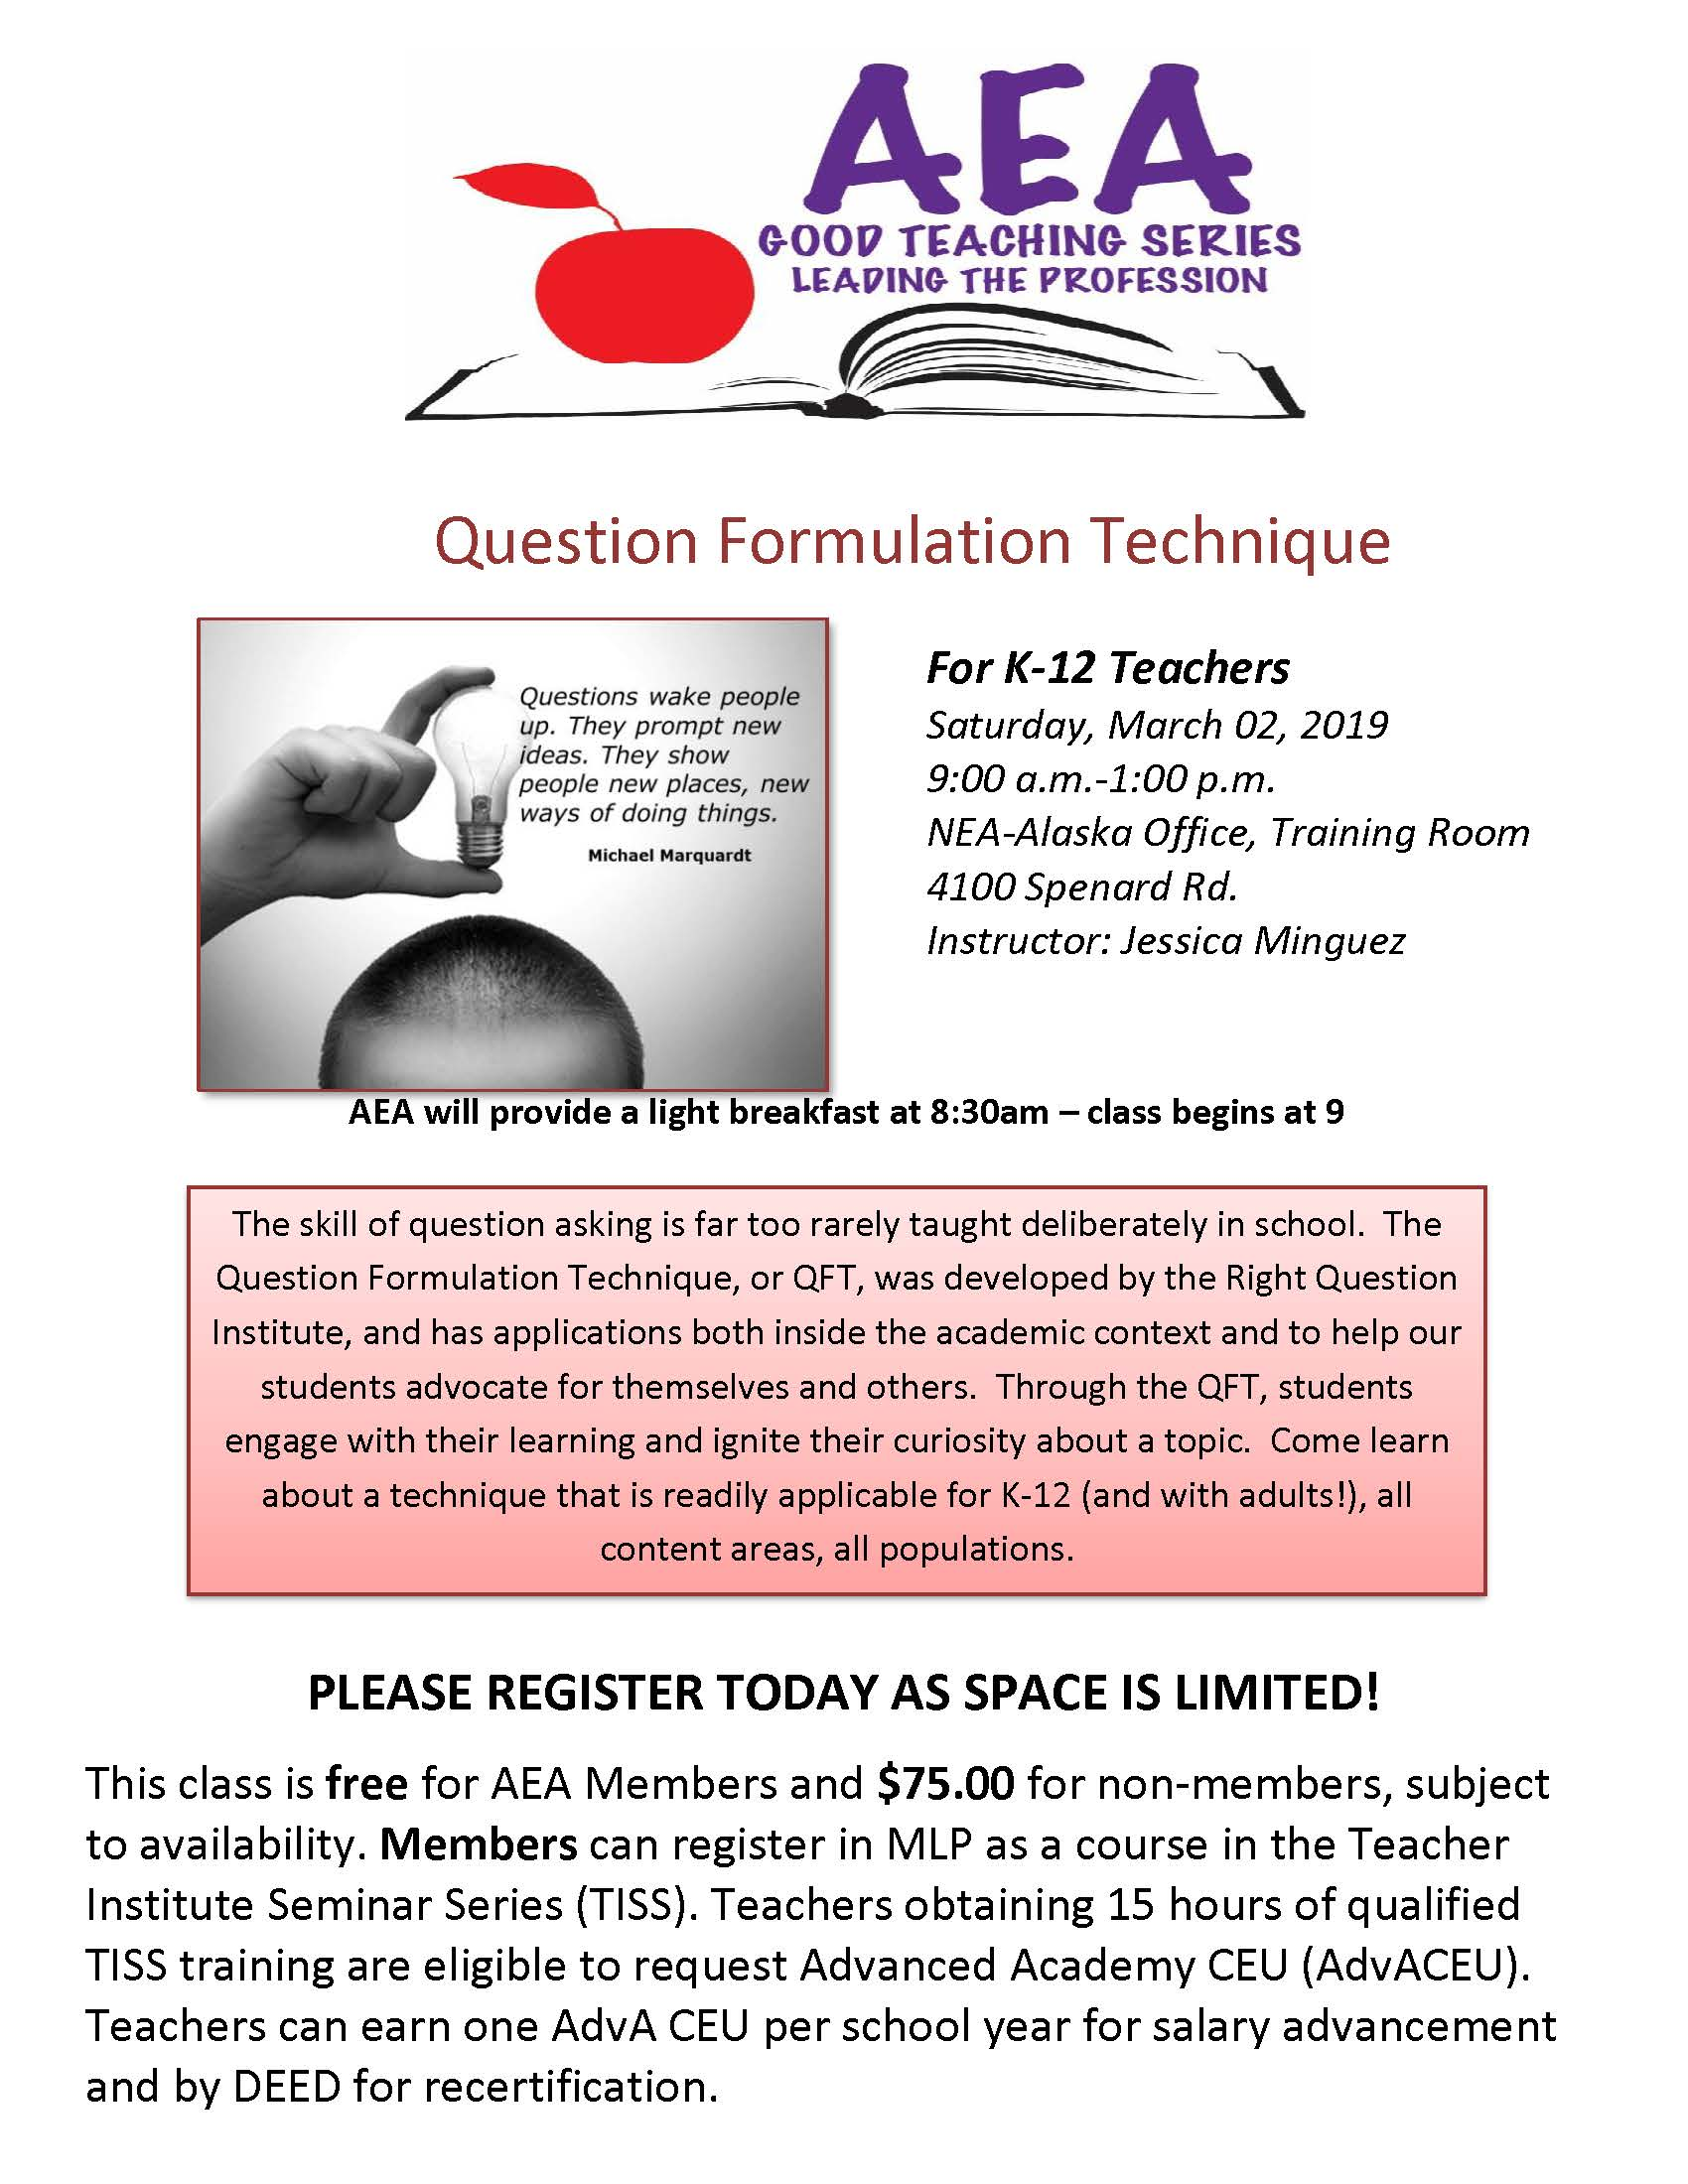 PD Class Flyer Mar 02_Question Formulation Technique.jpg